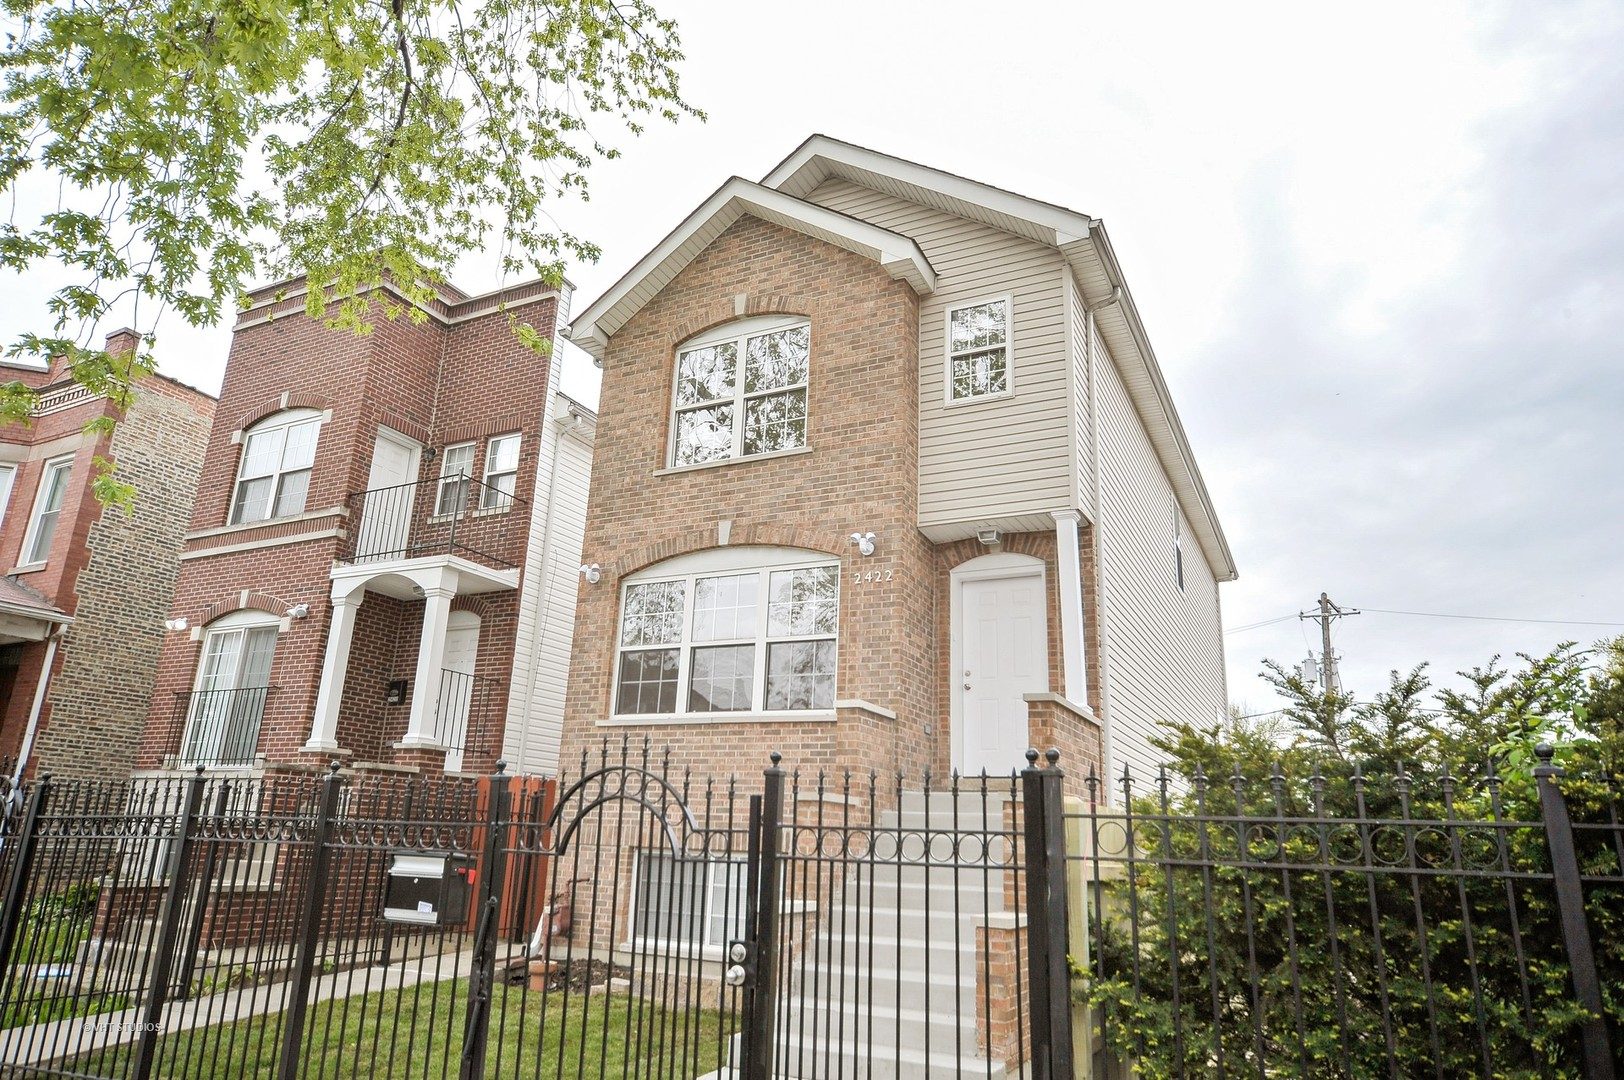 2422 NORTH KILDARE AVENUE, CHICAGO, IL 60639